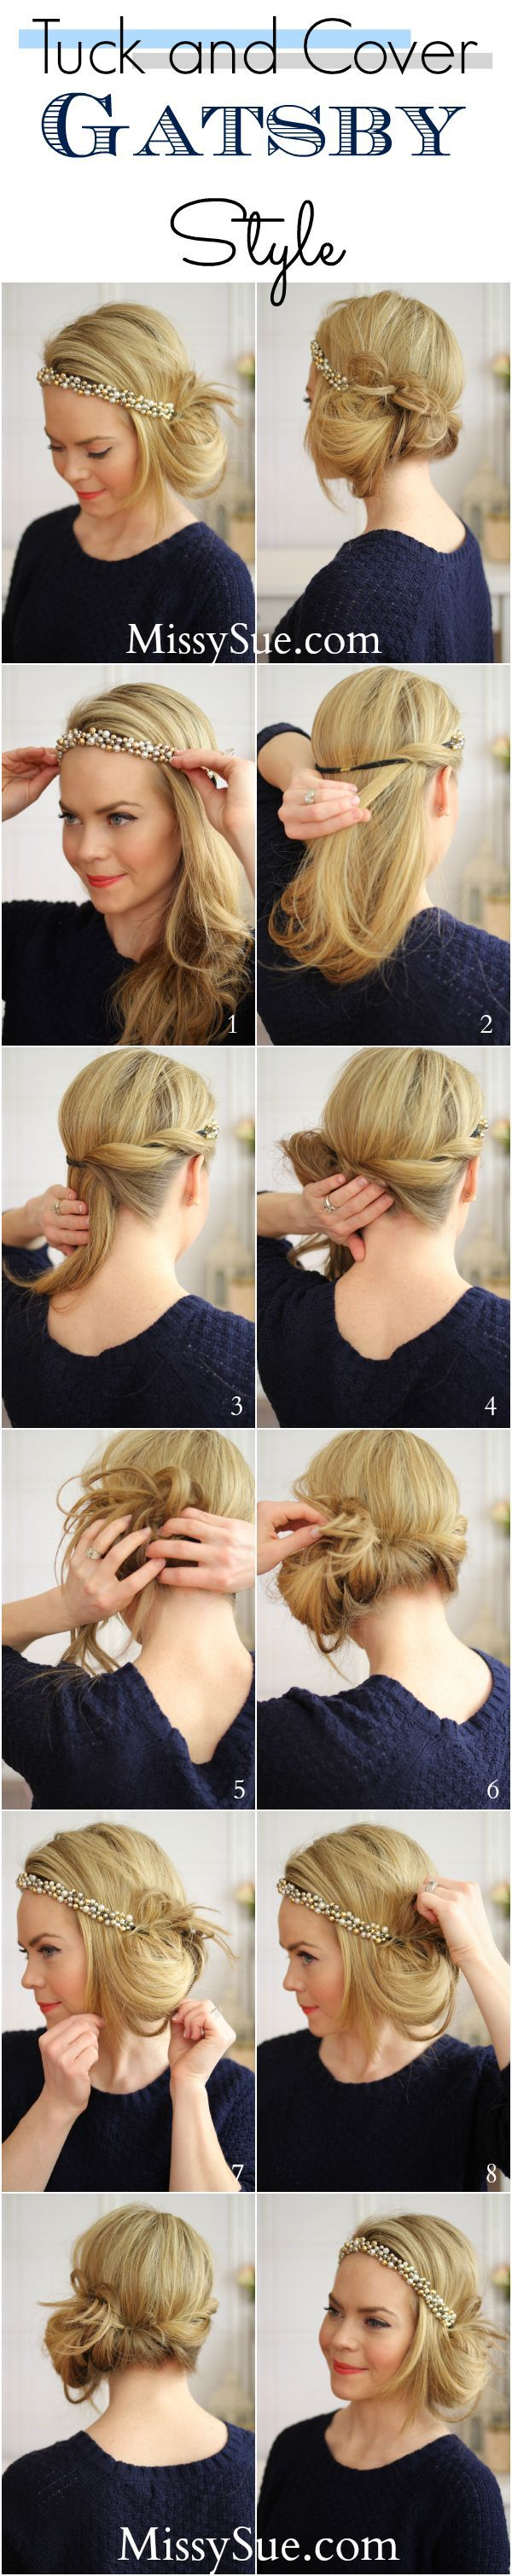 Gatsby Hair Style ~ Tuck and Cover - Style Estate - blog.styleestate....